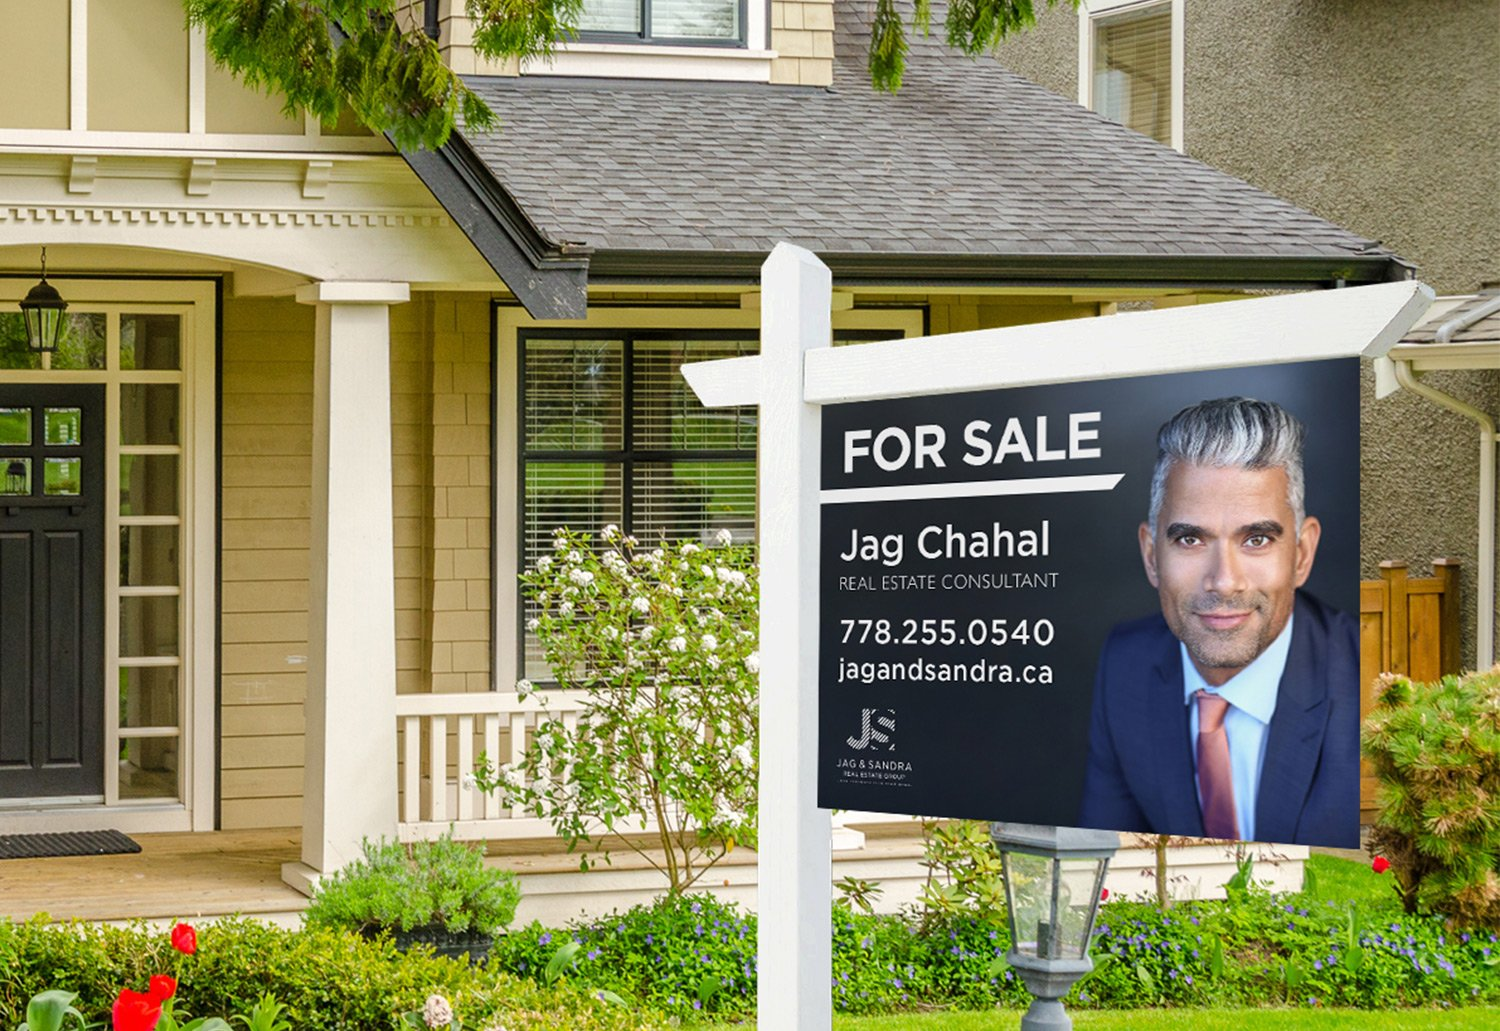 Why Real Estate Agents need a Custom Designed Signage